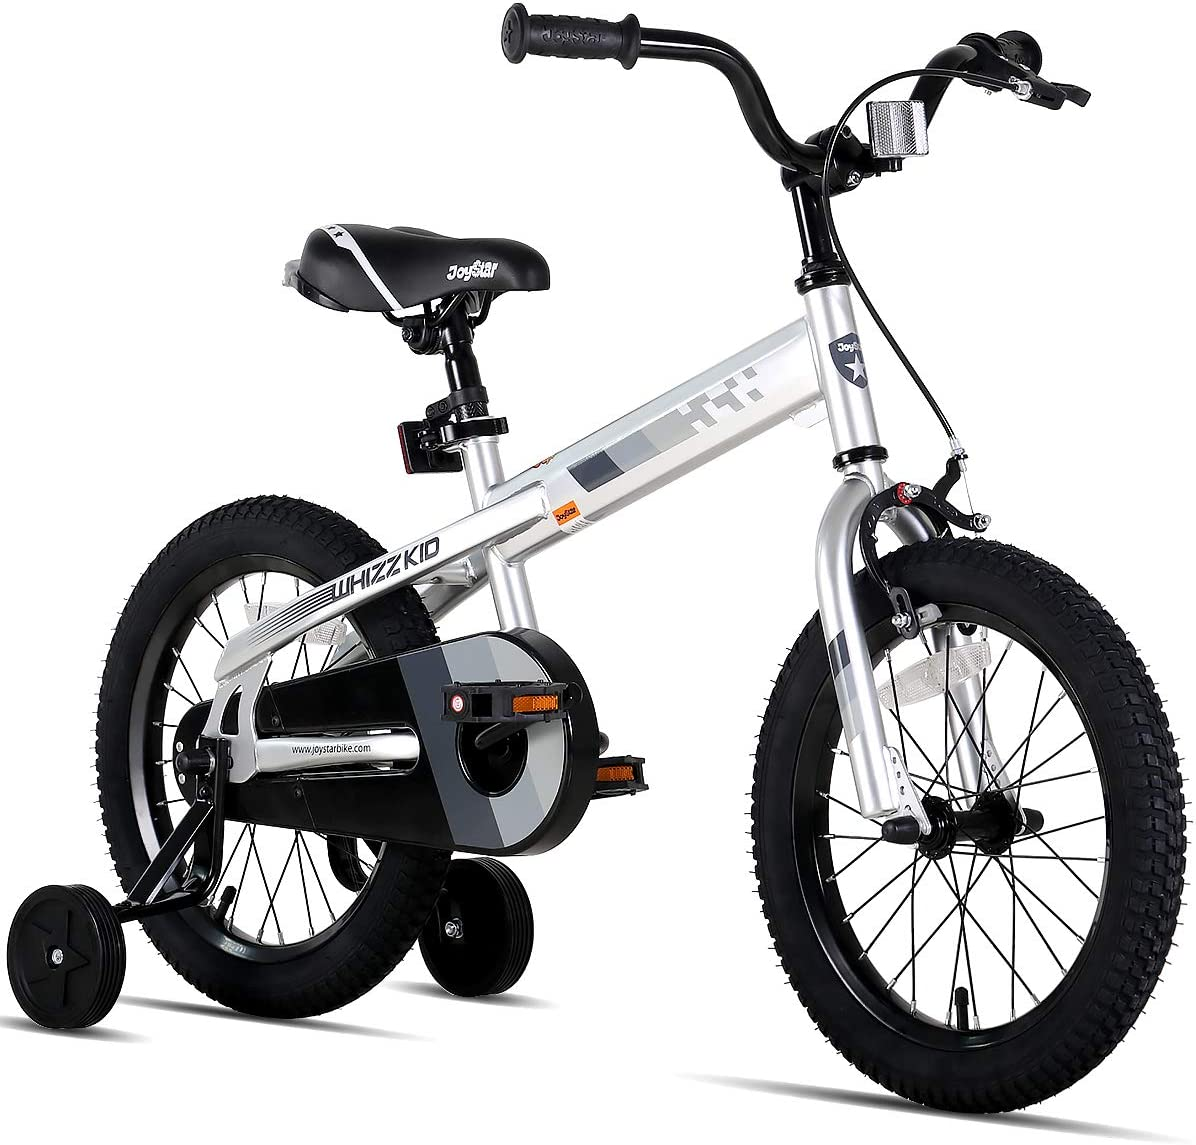 JOYSTAR Whizz Kids Bike with Training Wheels for Ages 2-9 Years Old Boys and Girls, 12 14 16 18 Toddler Bike with Handbrake for Children